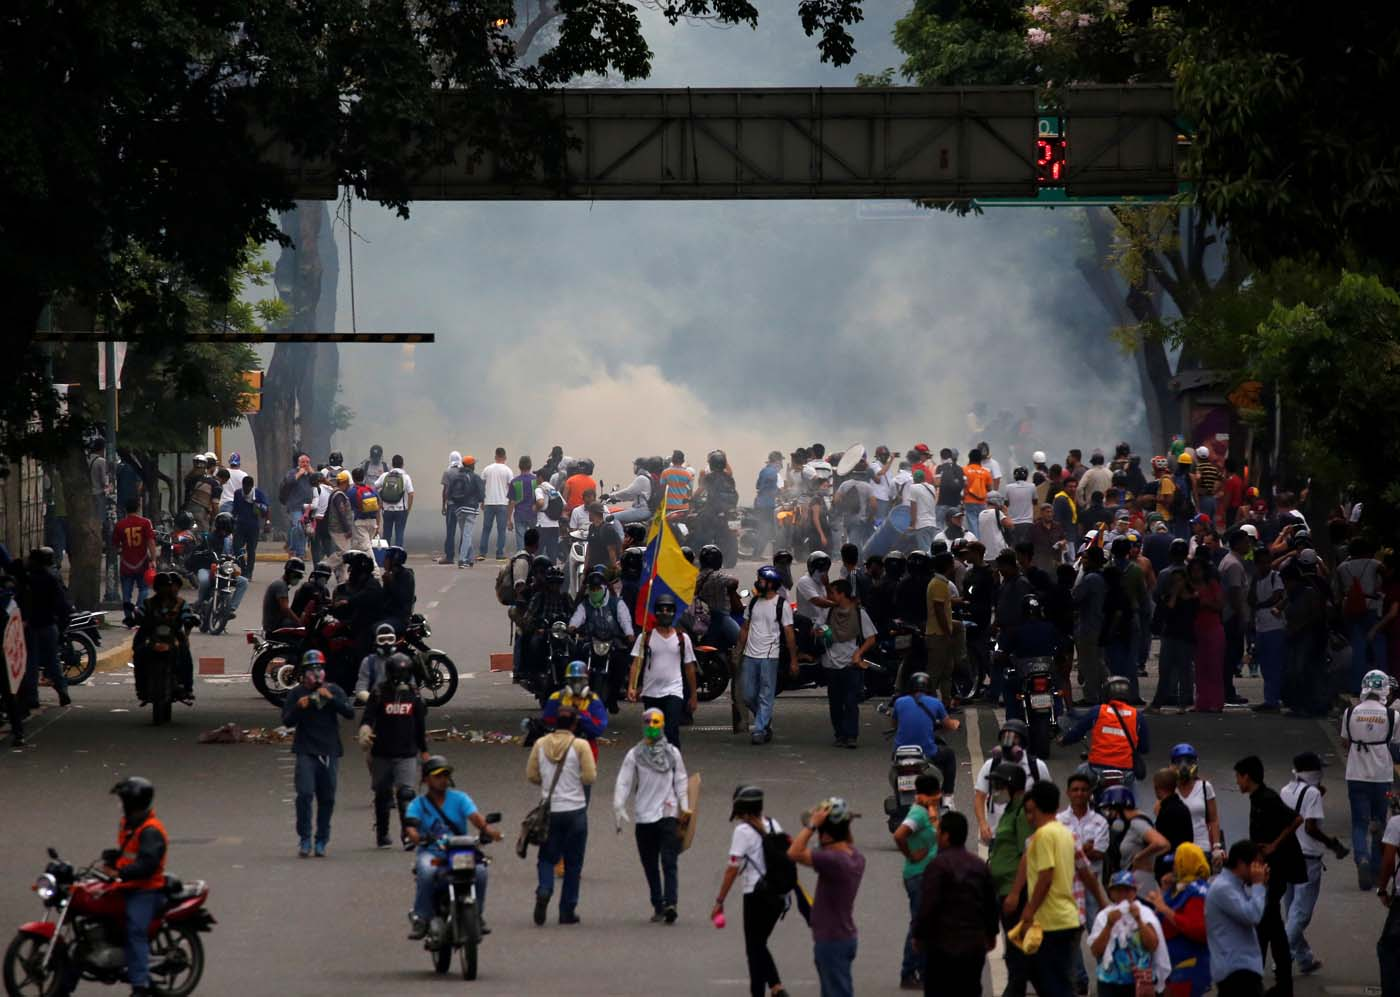 Opposition supporter clash with riot police while rallying against Venezuelan President Nicolas Maduro in Caracas, Venezuela, May 8, 2017. REUTERS/Carlos Garcia Rawlins